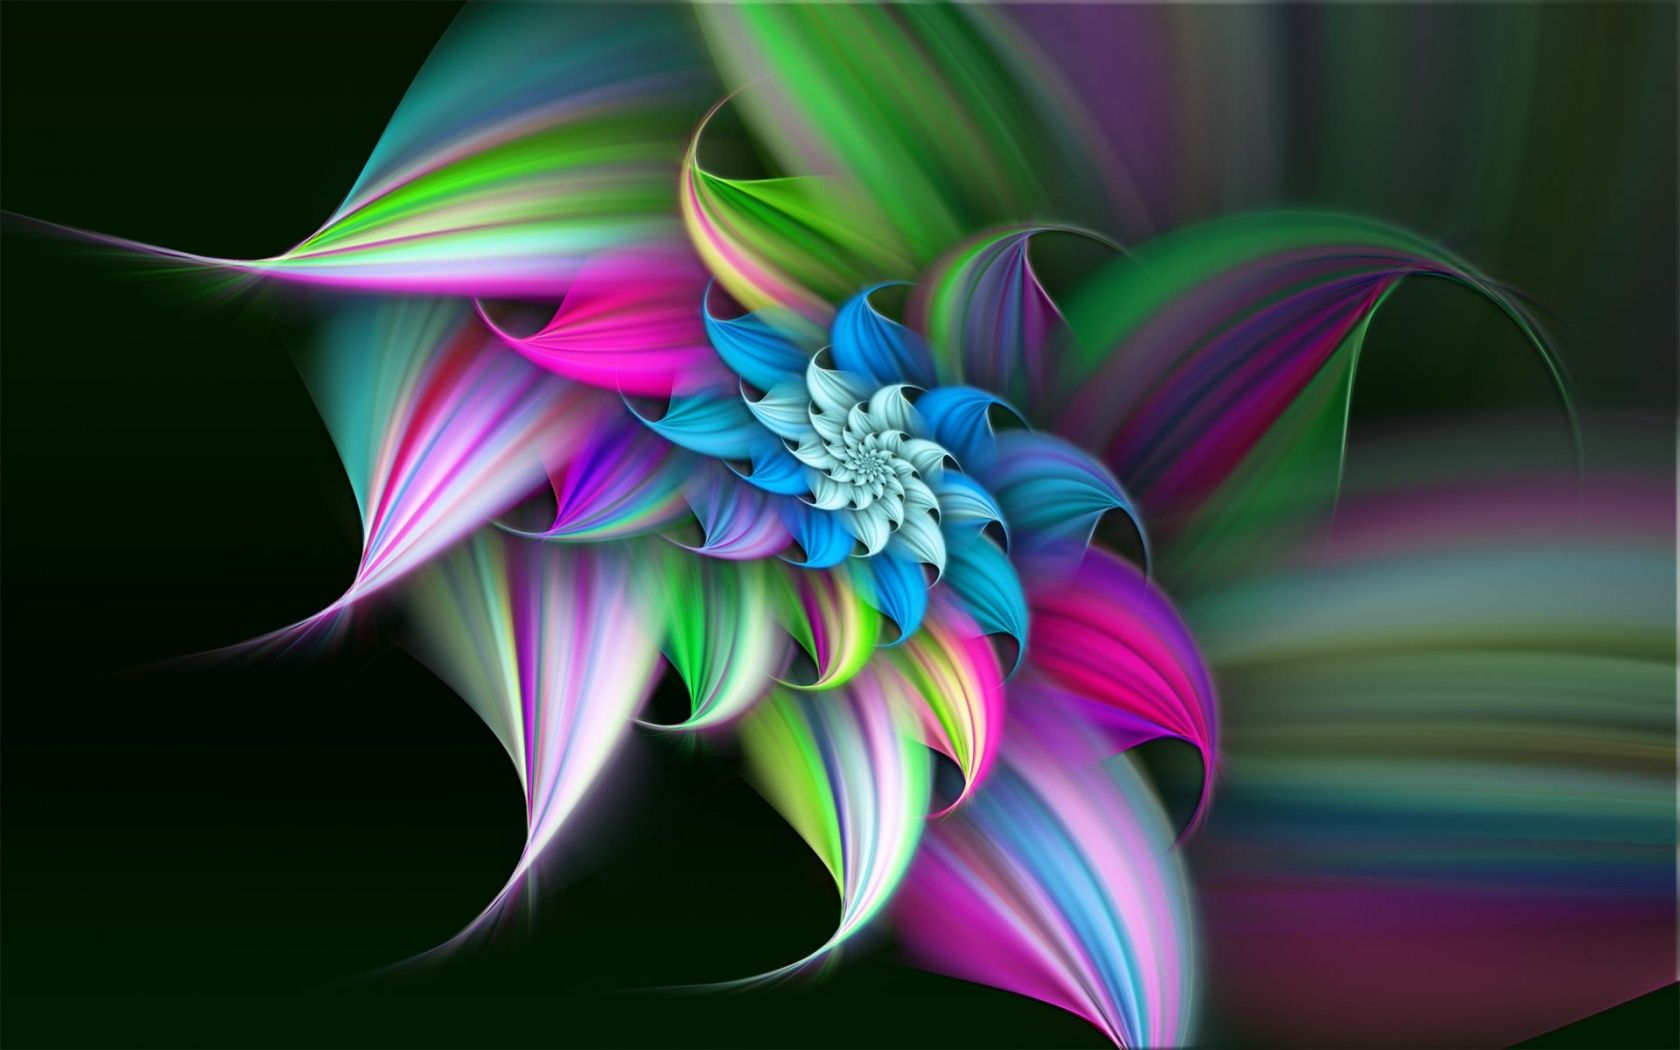 Colorful Summer Desktop Backgrounds: Colorful Wallpapers